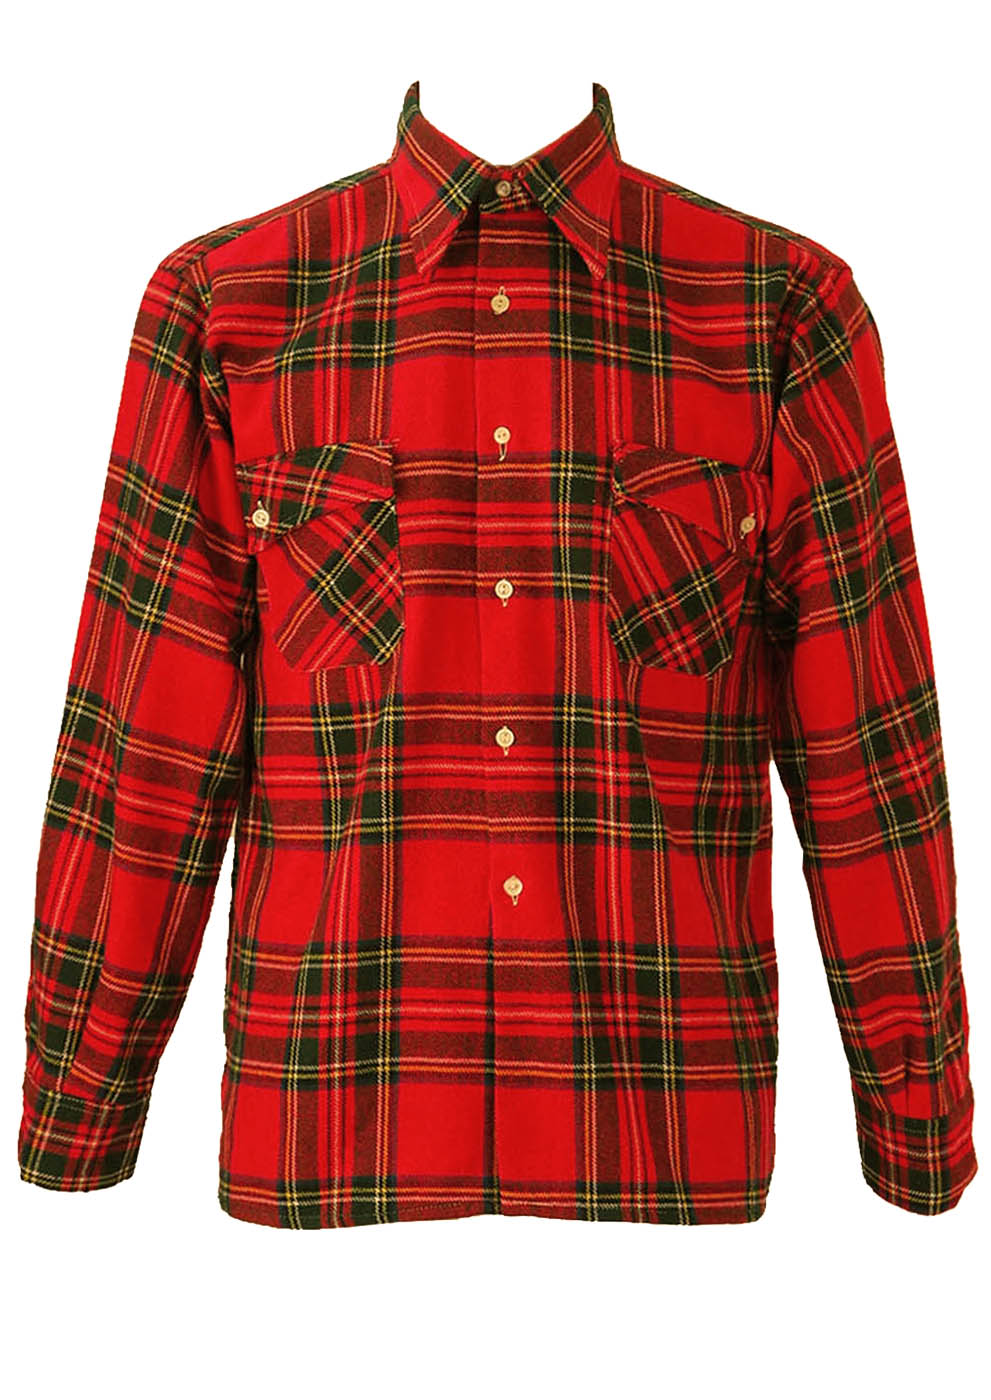 classic red tartan check flannel shirt m l reign vintage